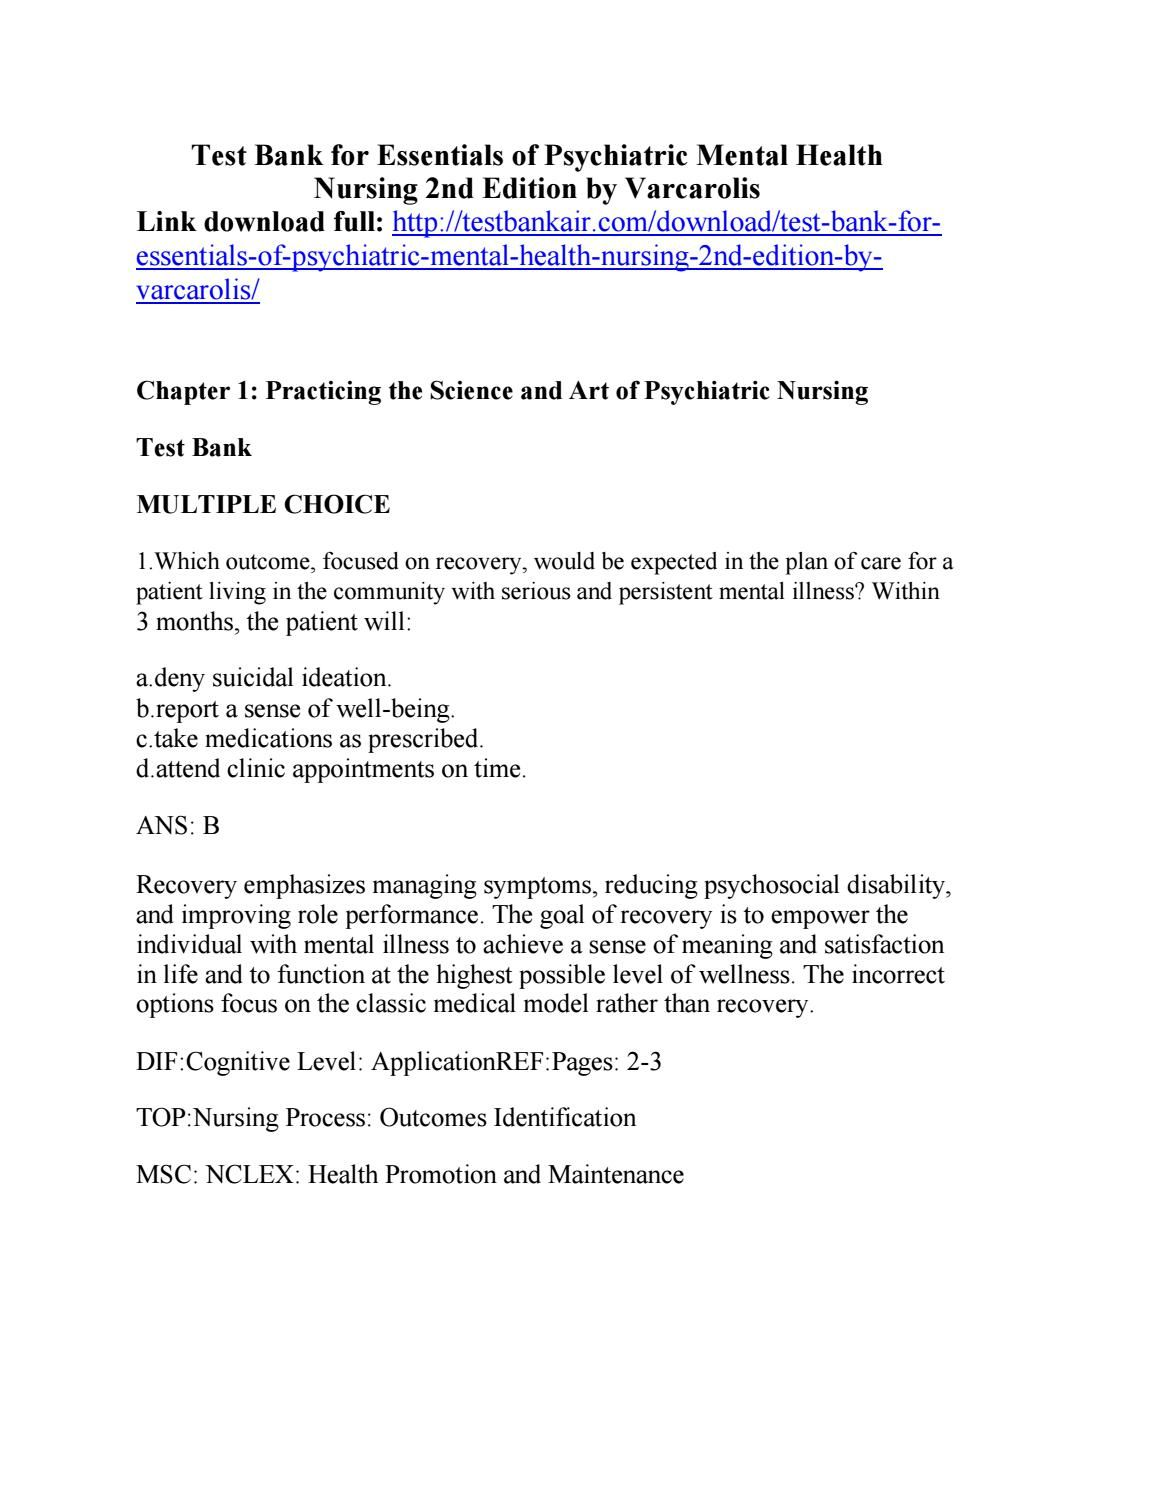 Download test bank for essentials of psychiatric mental health nursing 2nd  edition by varcarolis